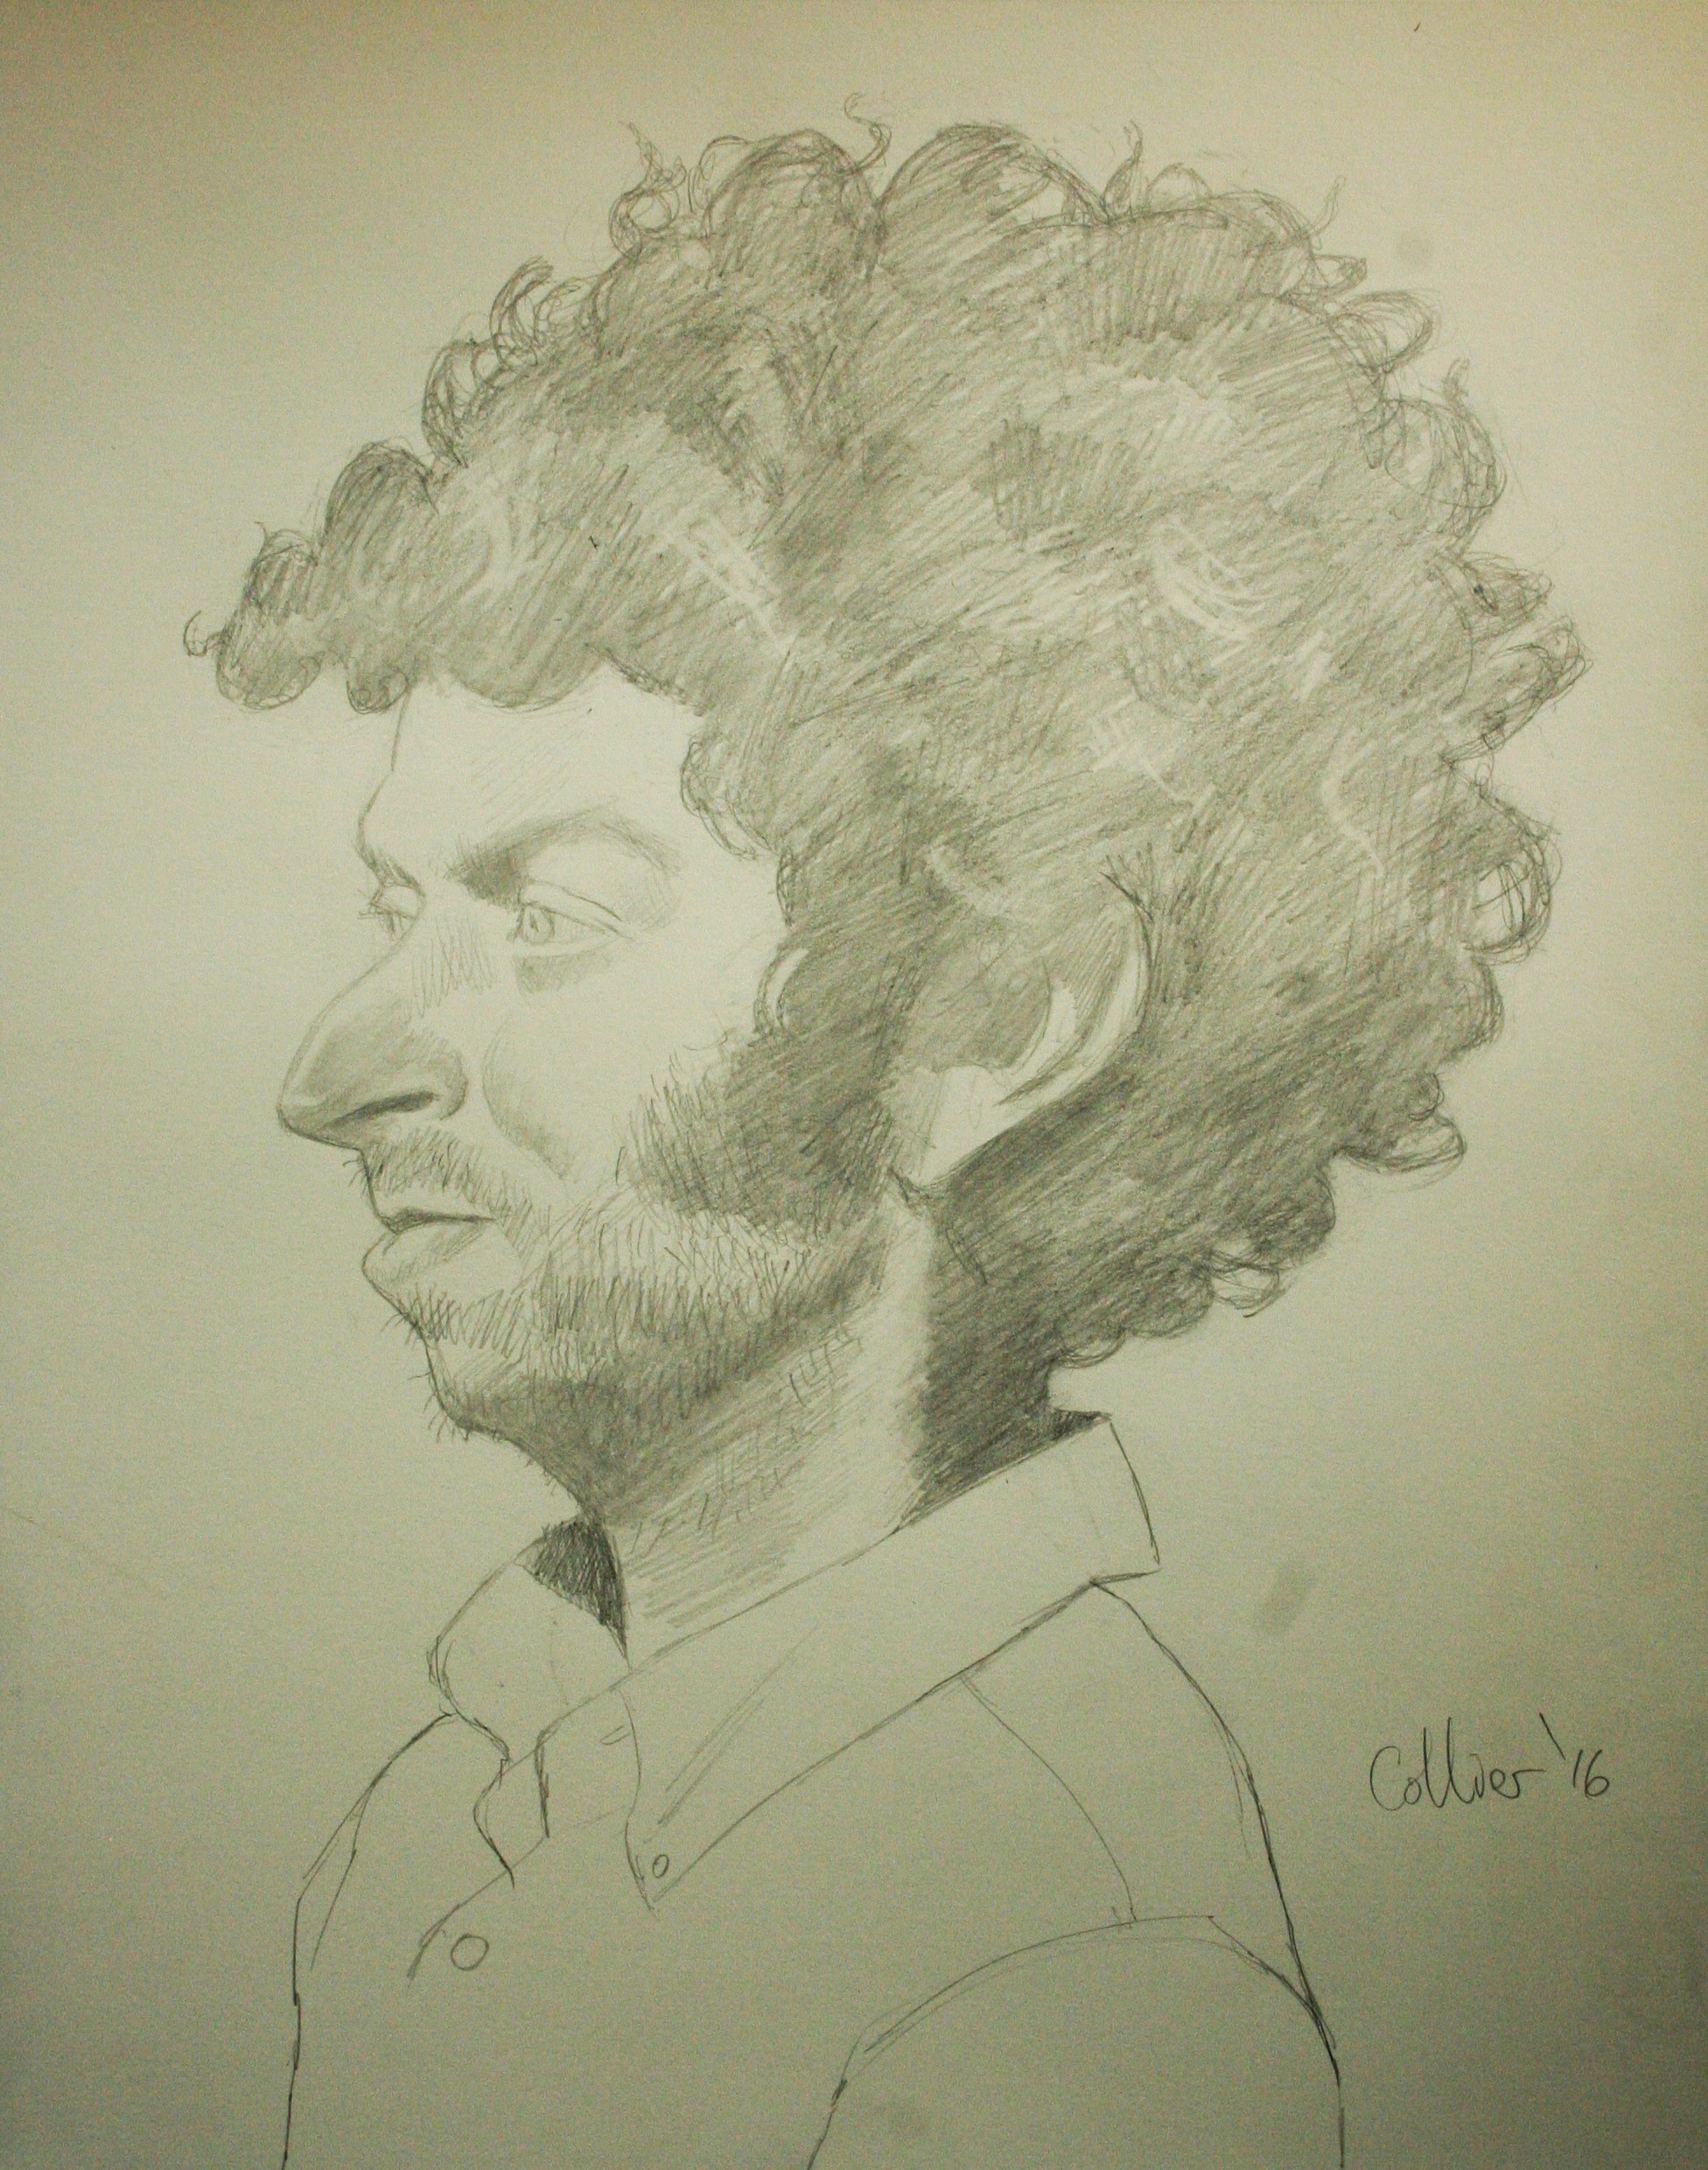 Howard Collier did this hour and a half caricature.